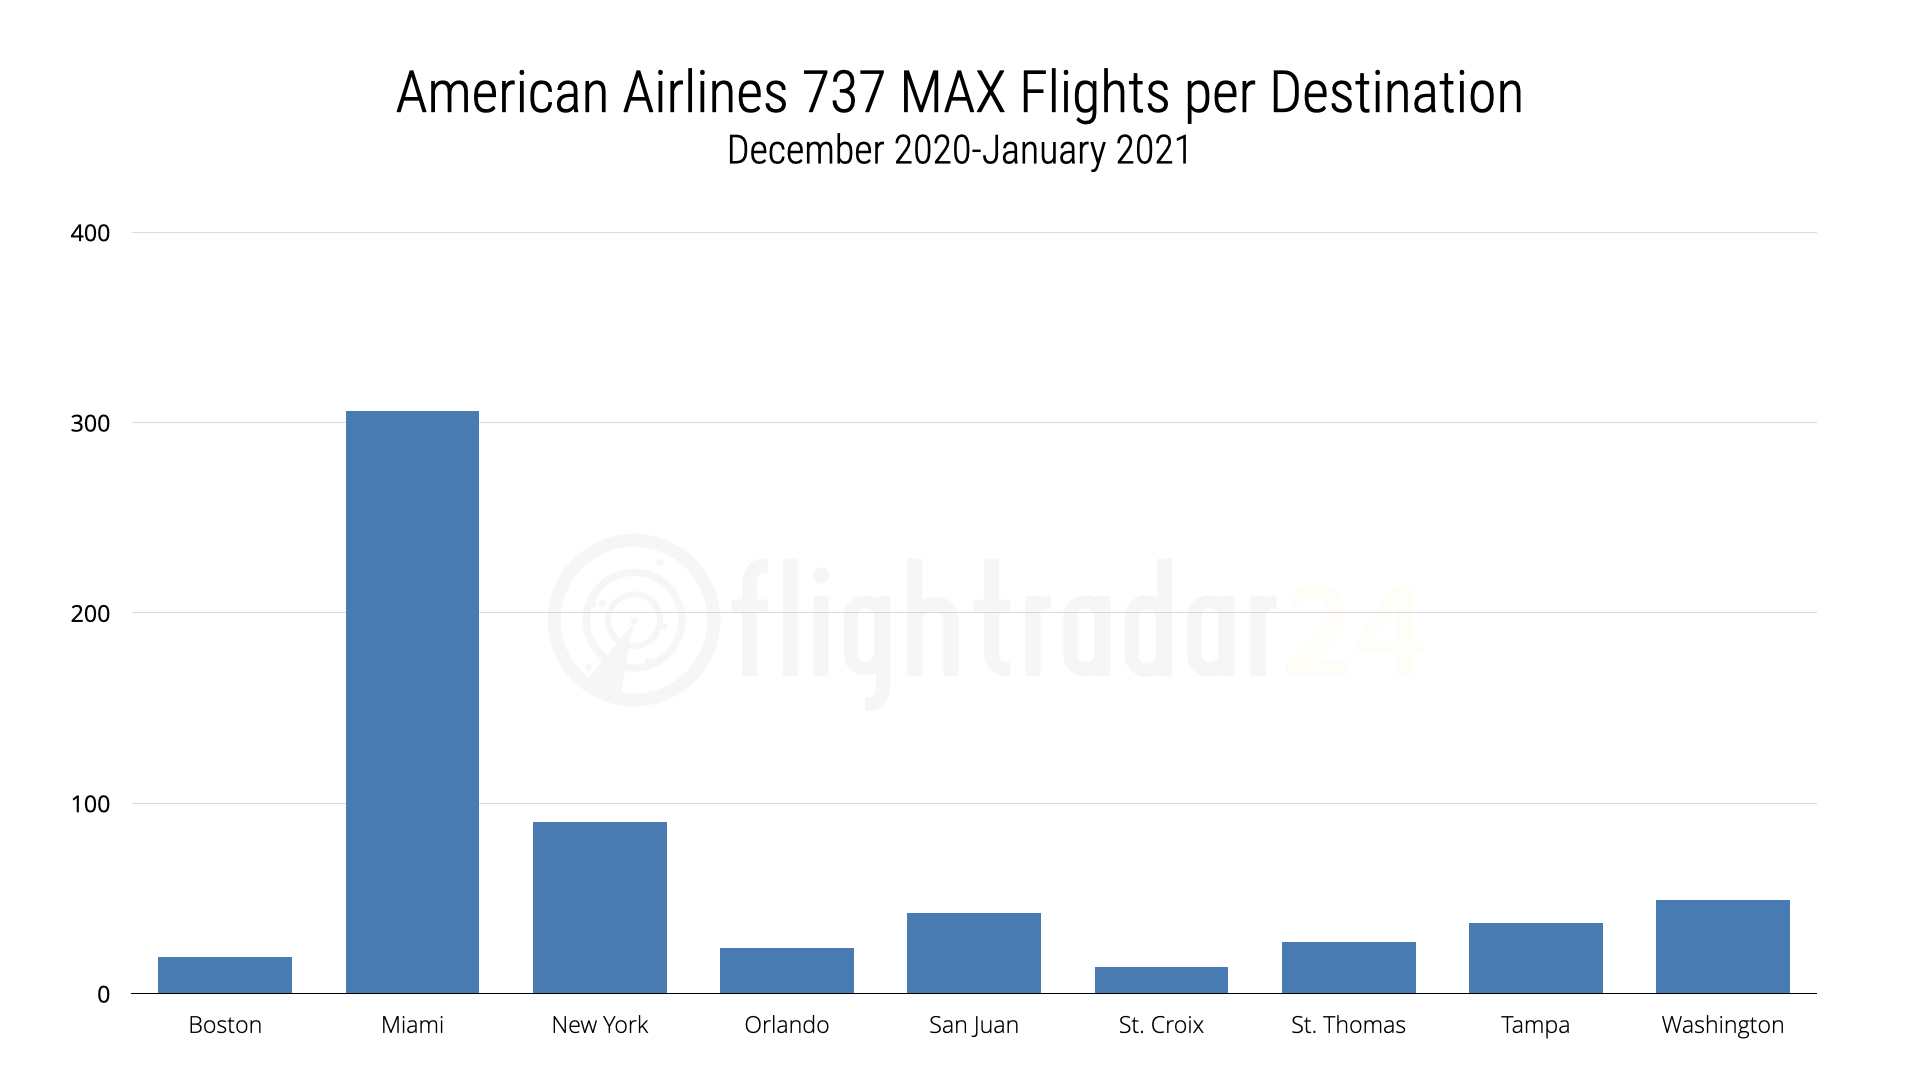 American Airlines MAX flights since return to revenue service